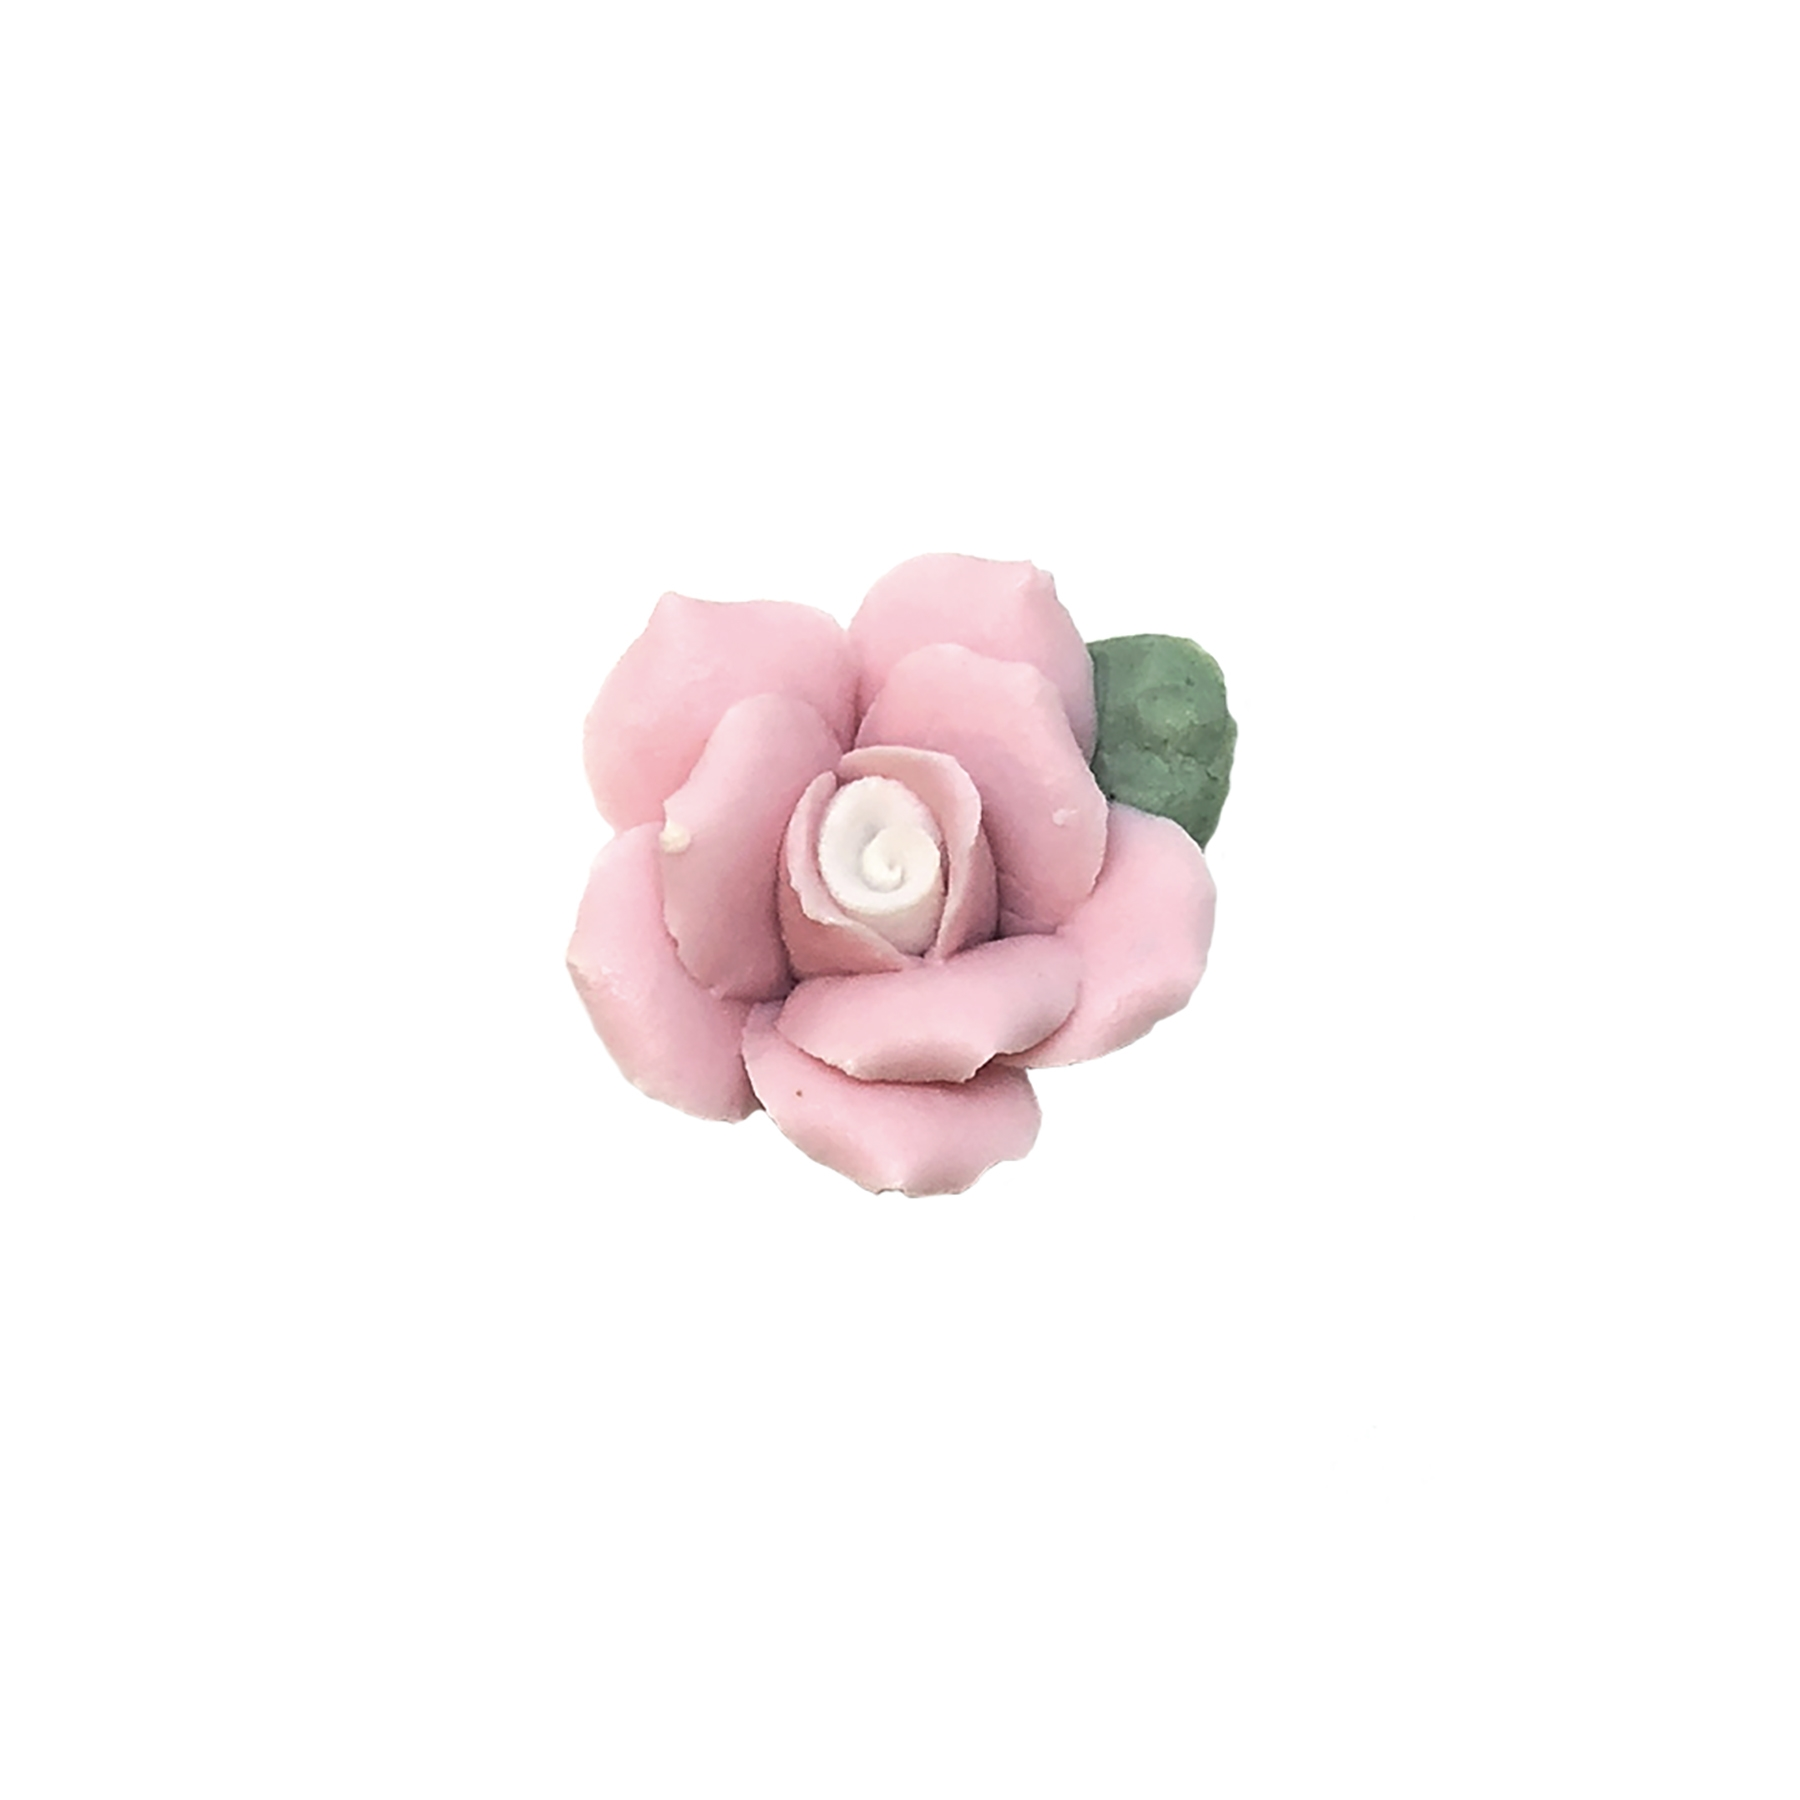 pink and white ceramic flower, flower, bisque rose, rose, ceramic flower, three layers, pink flower, white center, handmade, flat back design, pink and white, 17mm, rose flower, ceramic rose, jewelry making, jewelry supplies, B'sue Boutiques, 09032